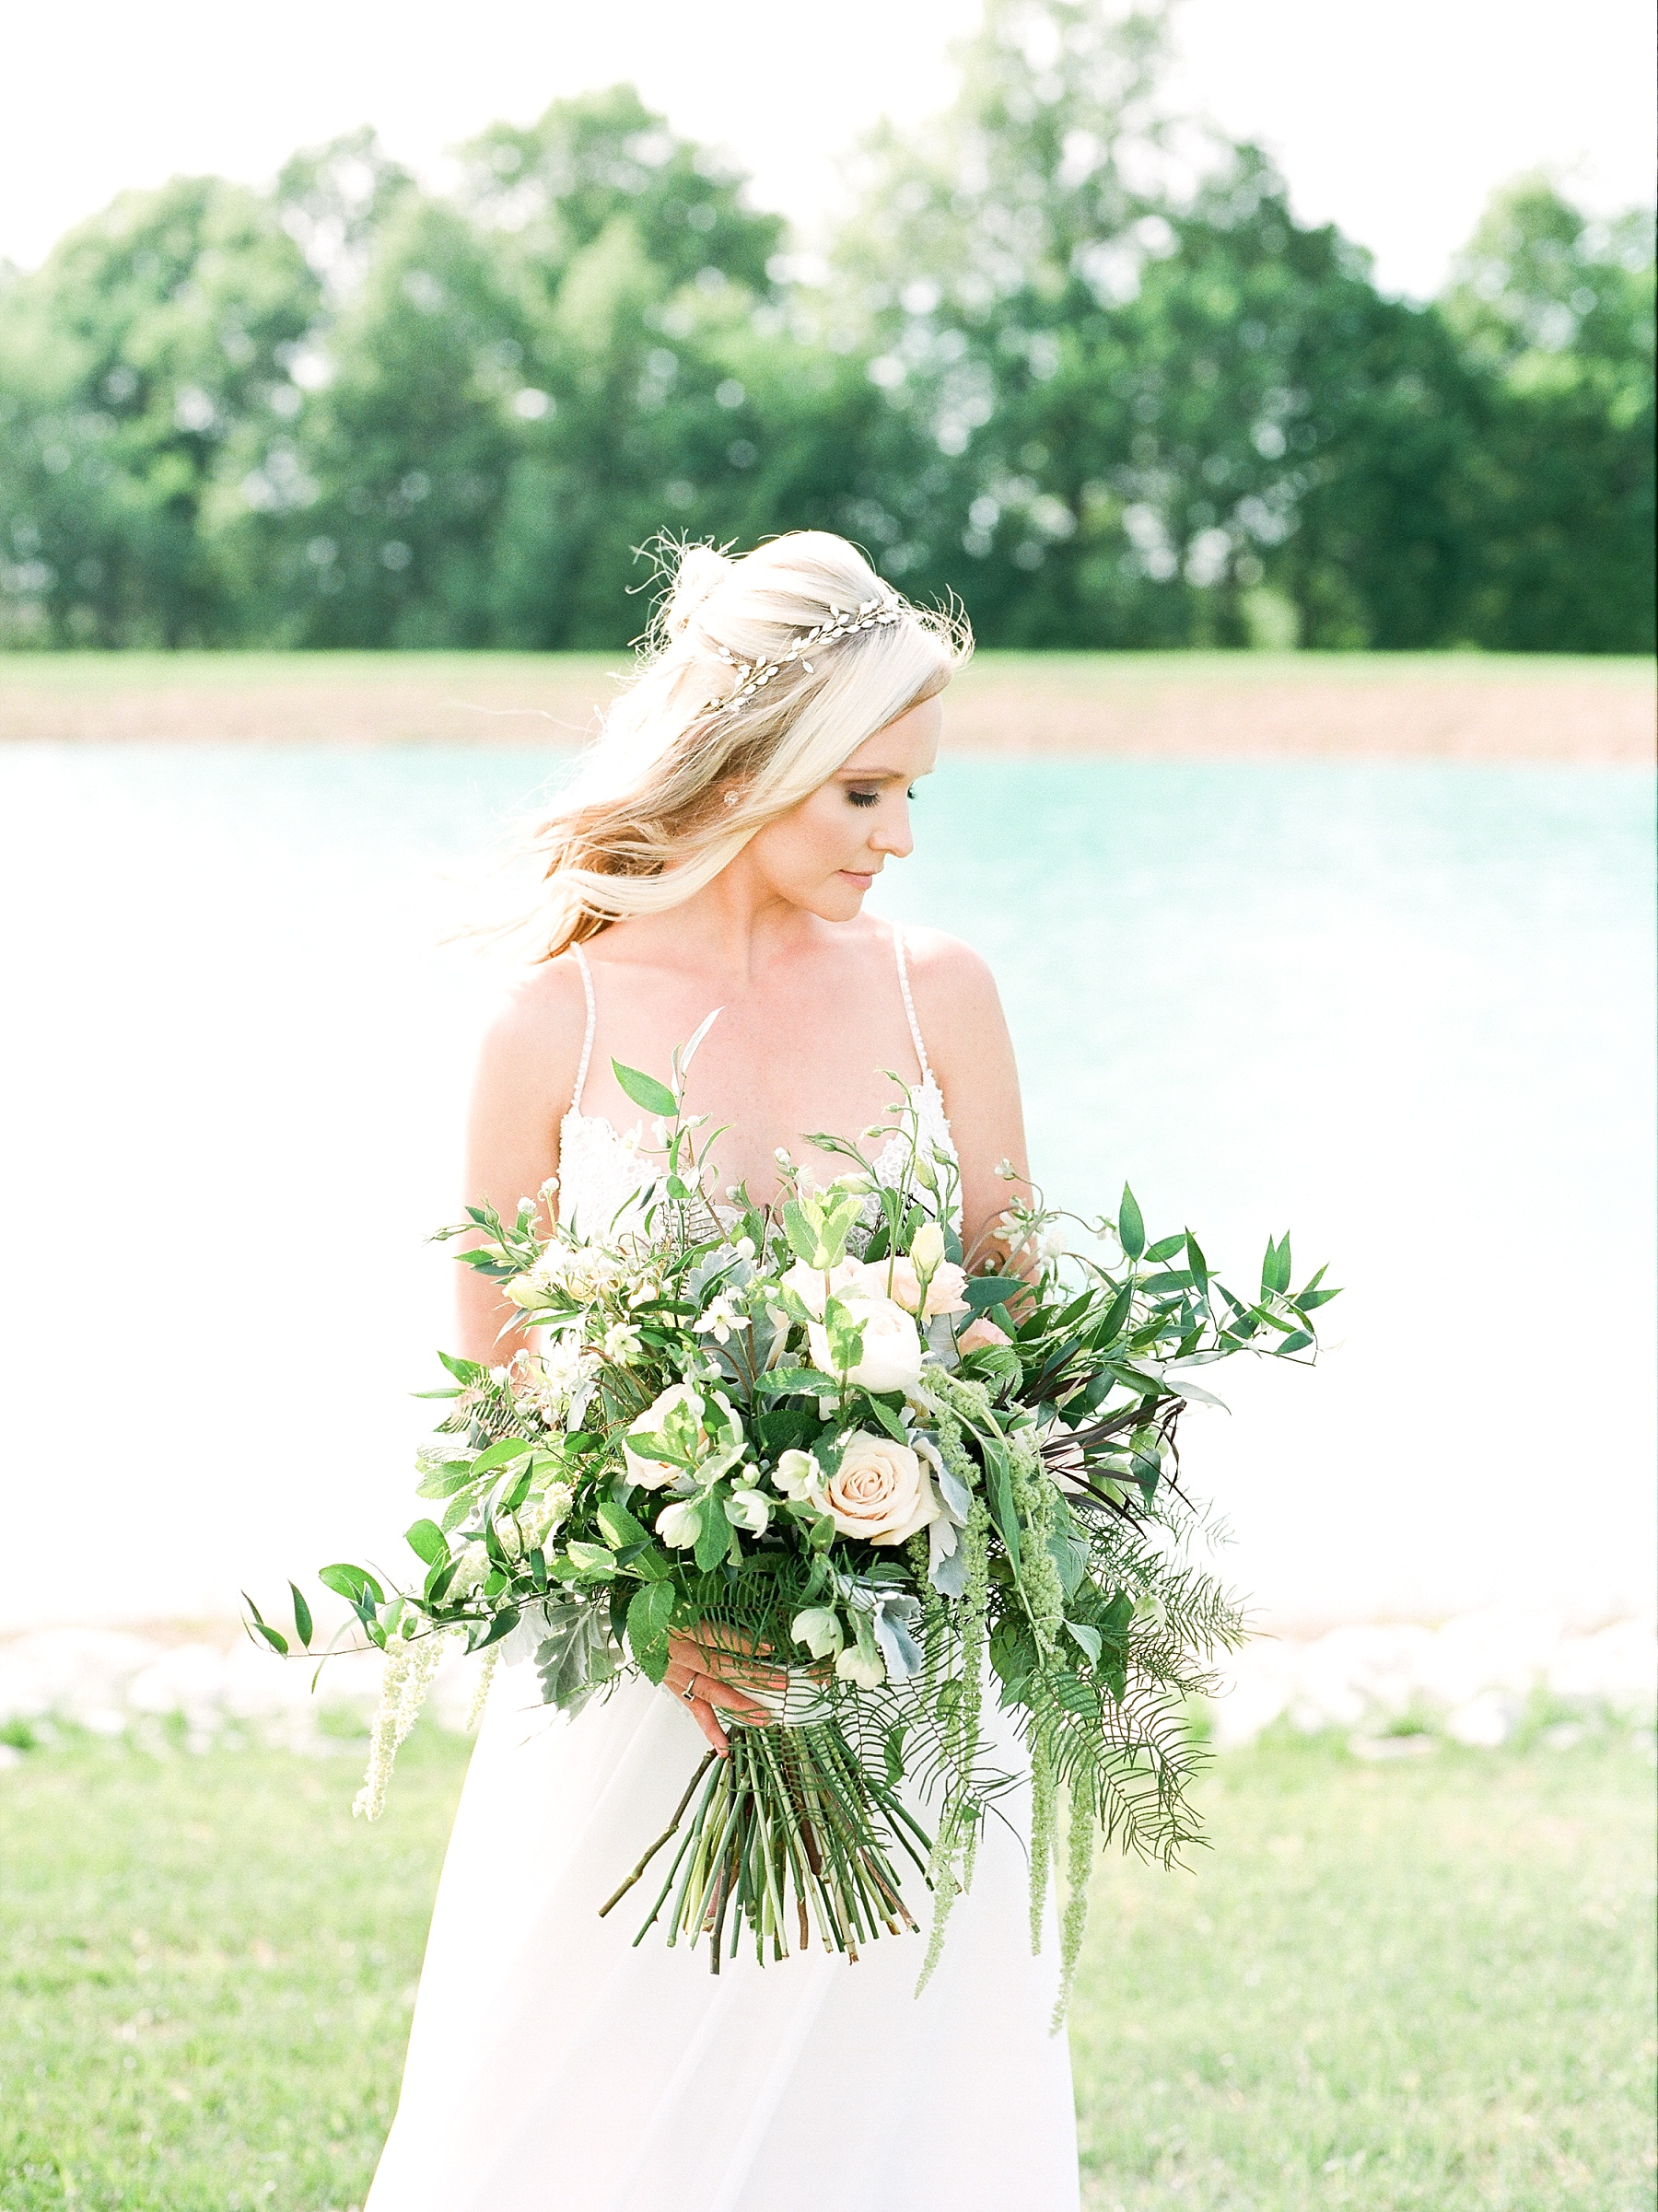 Textural Organic Wedding in All White Venue by Kelsi Kliethermes Wedding Photographer - Missouri, Midwest, and Destinations_0049.jpg